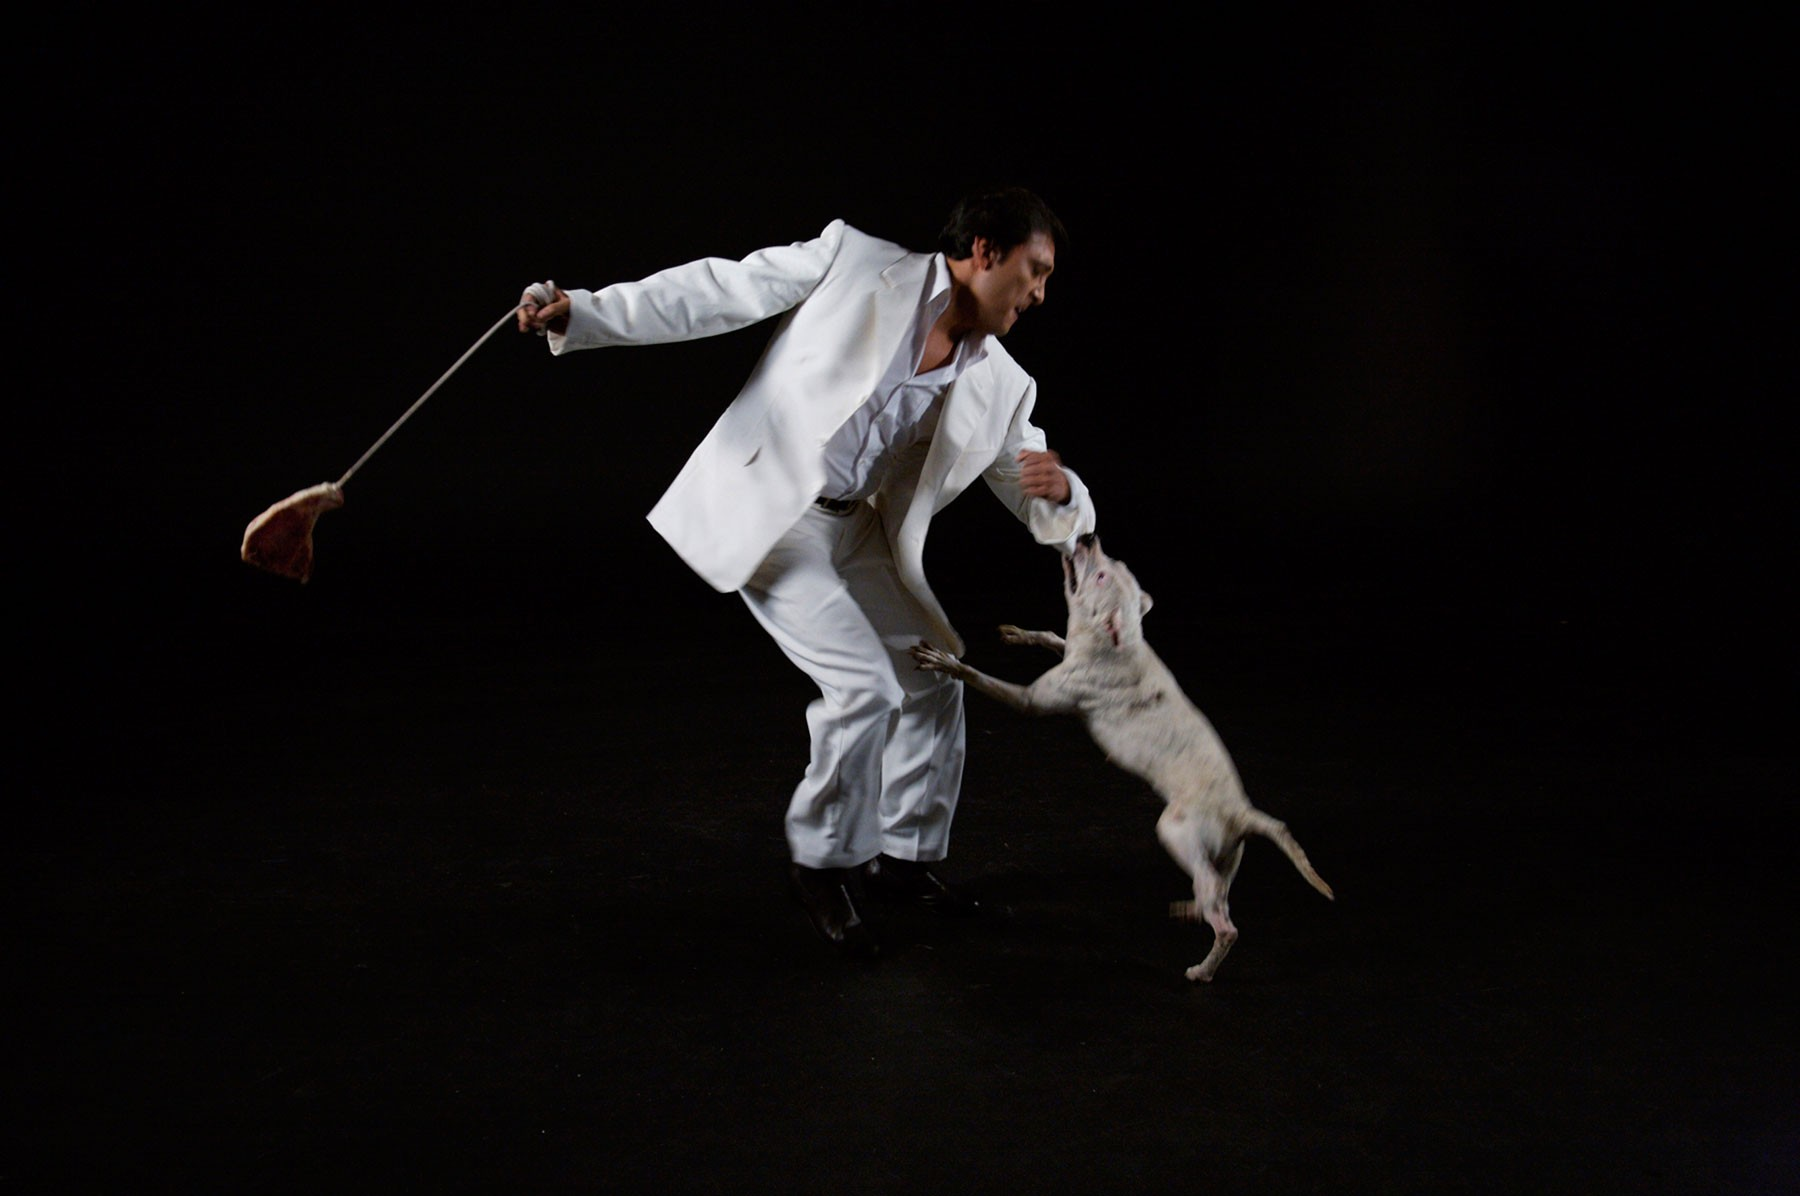 A man dancing while a dog bites his sleeve